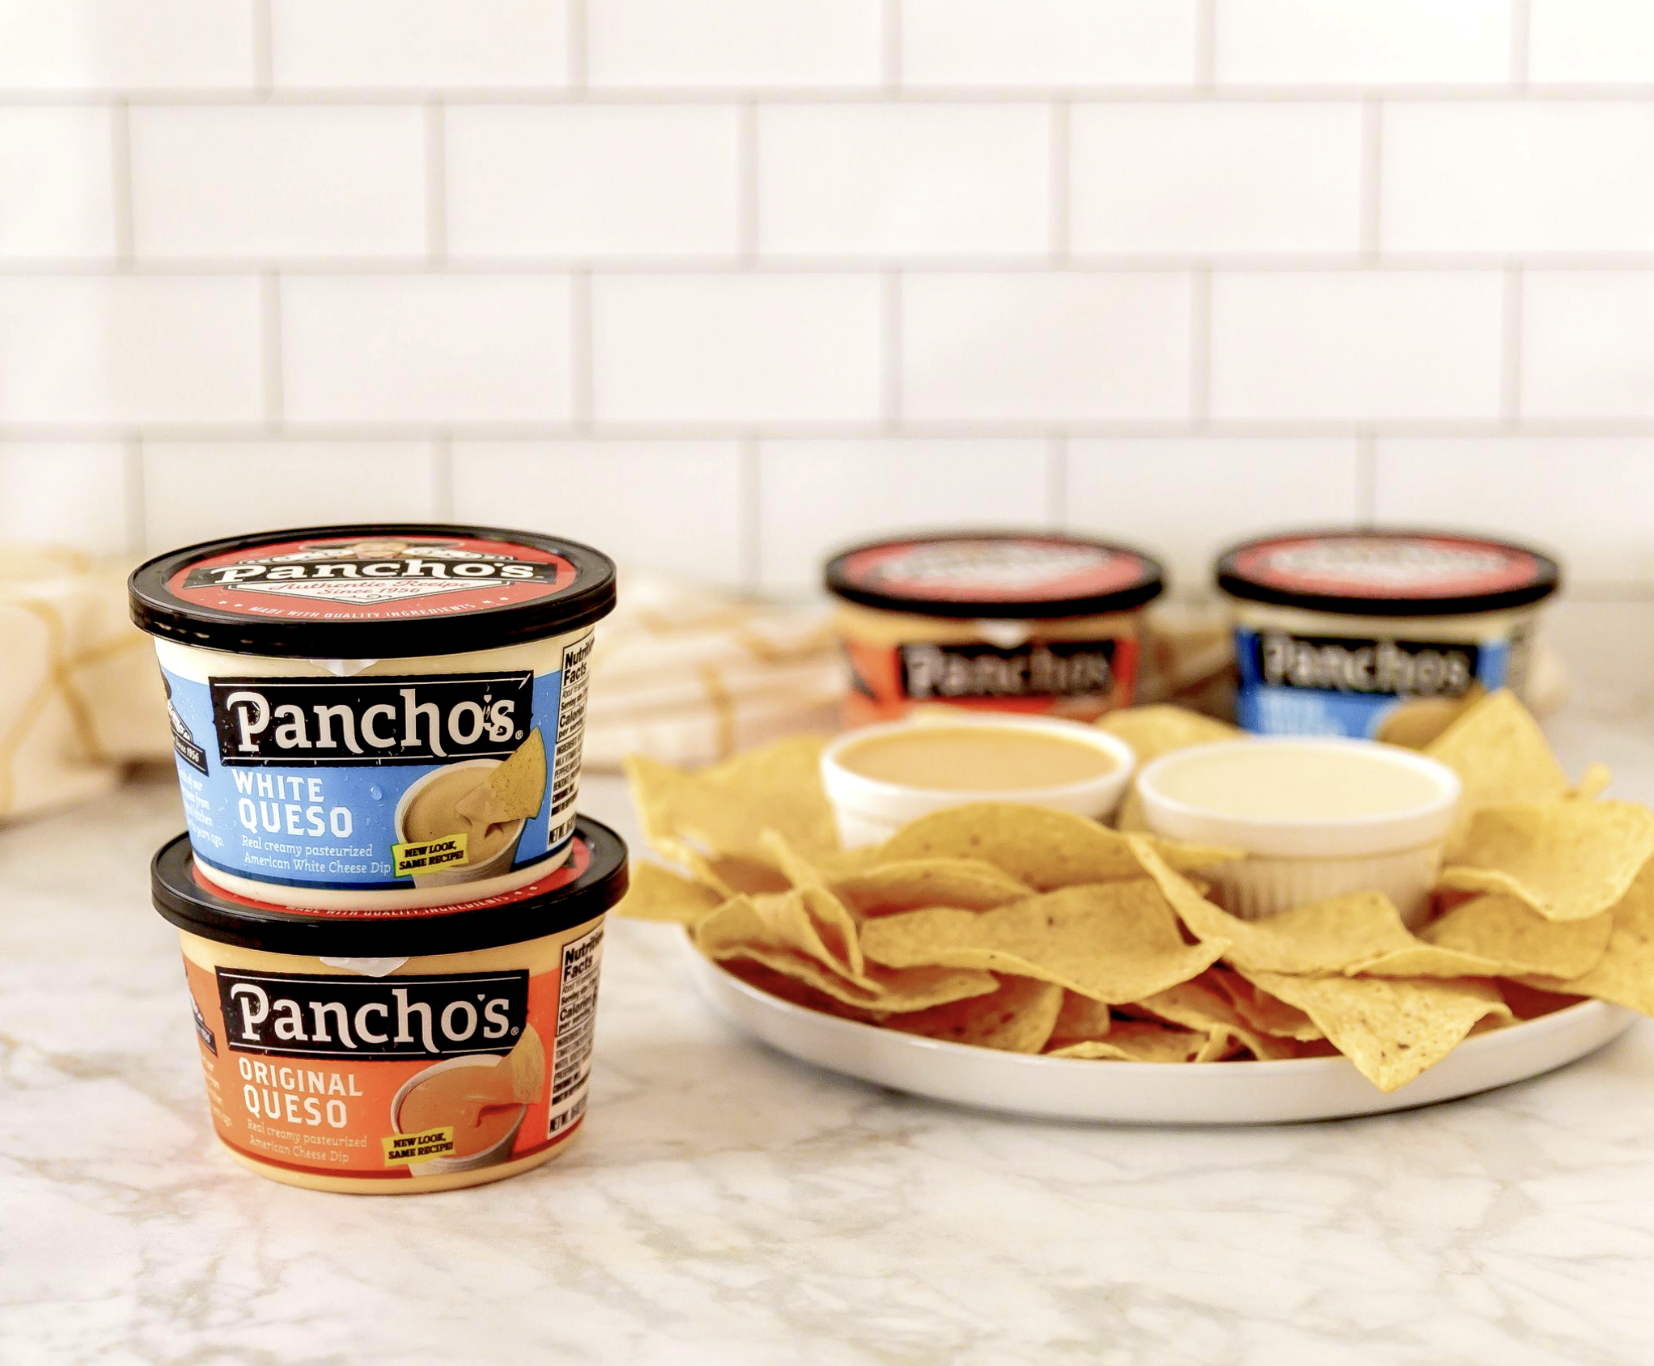 Pancho's Queso Dip